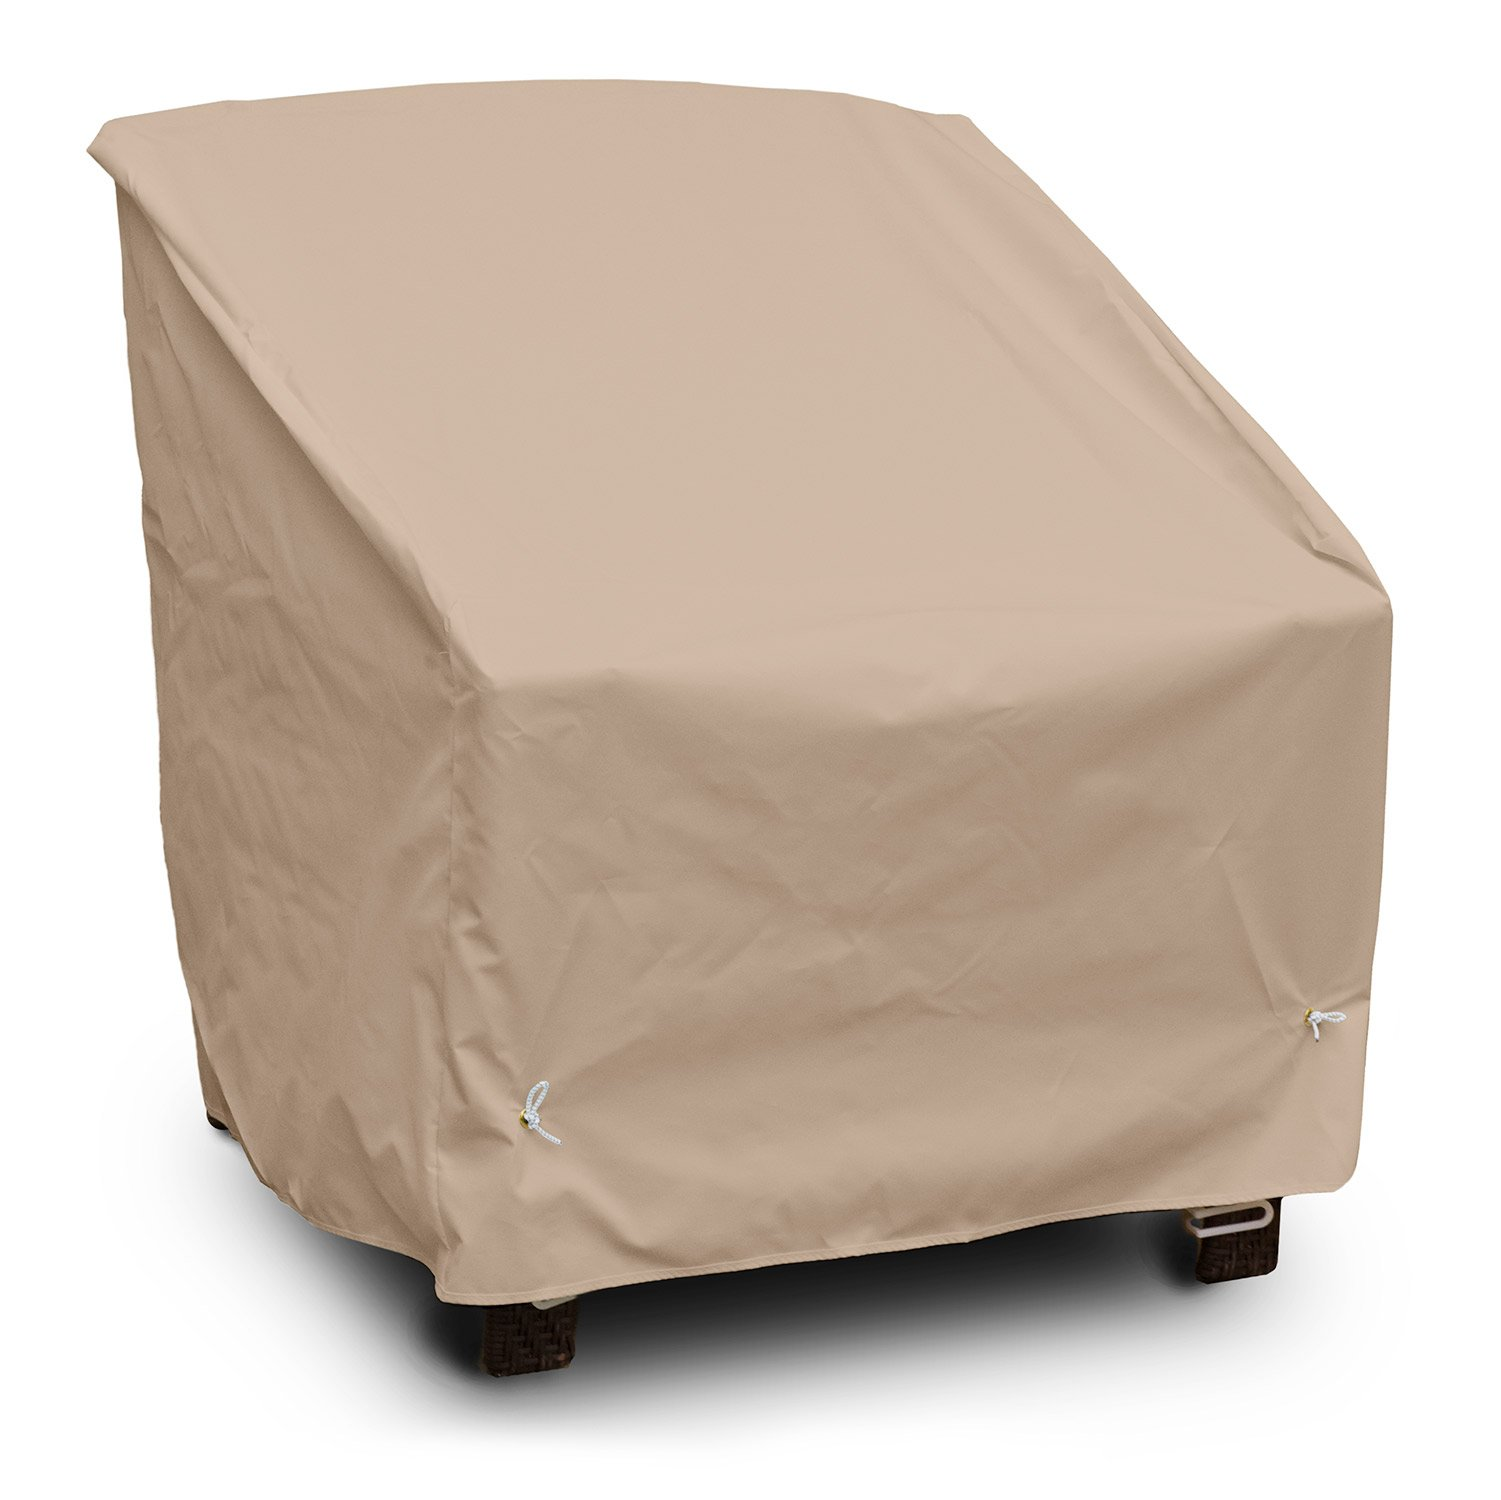 KoverRoos Weathermax 49522 Deep Seating High-Back Lounge Chair Cover, 39-Inch Width by 33-Inch Diameter by 38-Inch Height, Toast